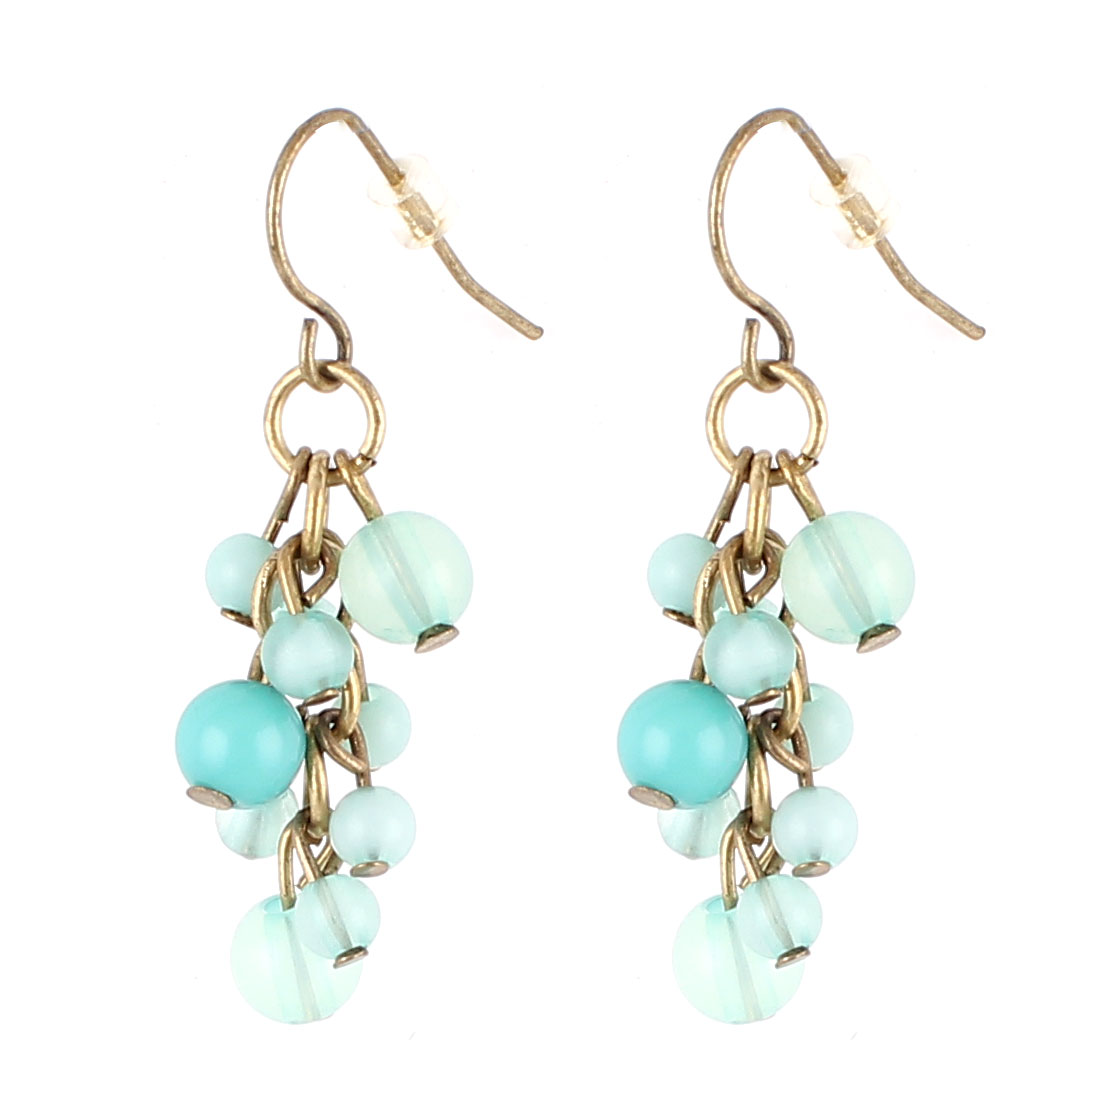 "Lady Women Lightweight Plastic Beads Design Pendant Metal Fish Hook Earrings Earbob Eardrop Aquamarine Copper Tone 1.4"" Length Pair"